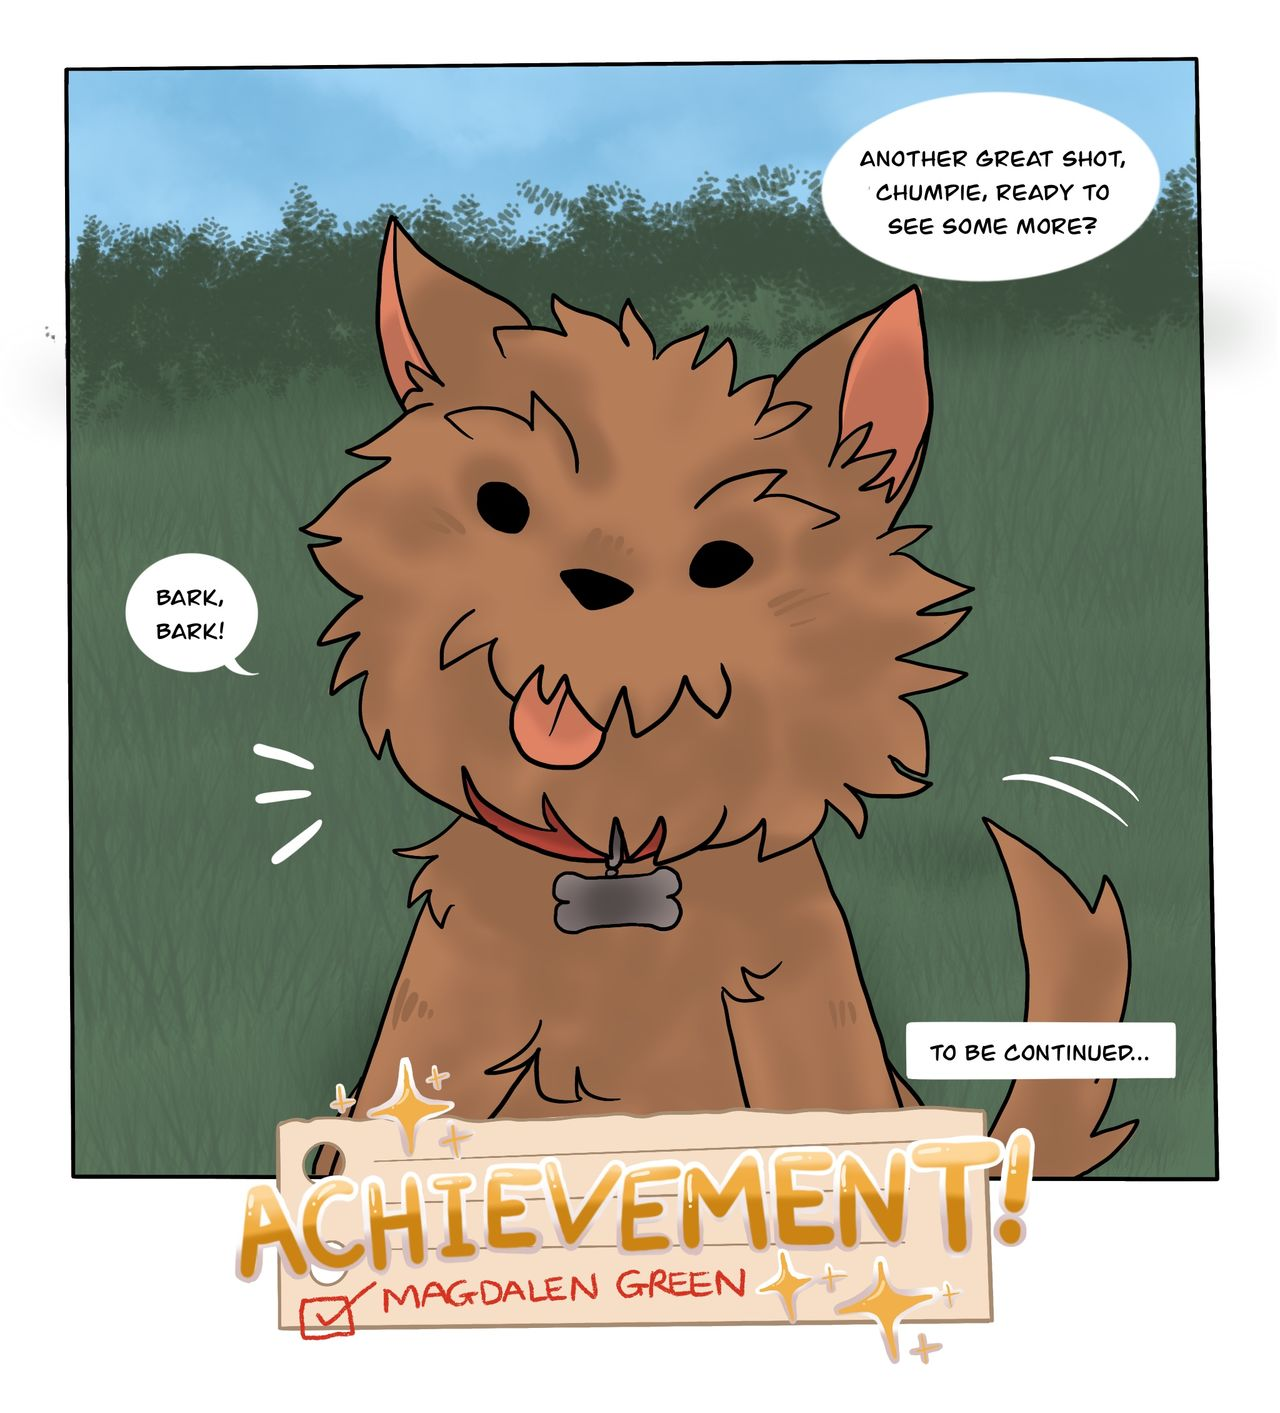 "This webcomic panel shows the dog, Chumpie, barking in agreement when the character says they should go find more things to photograph. A banner over the panel says ""Achievement unlocked: Magdalen Green"", like a videogame."